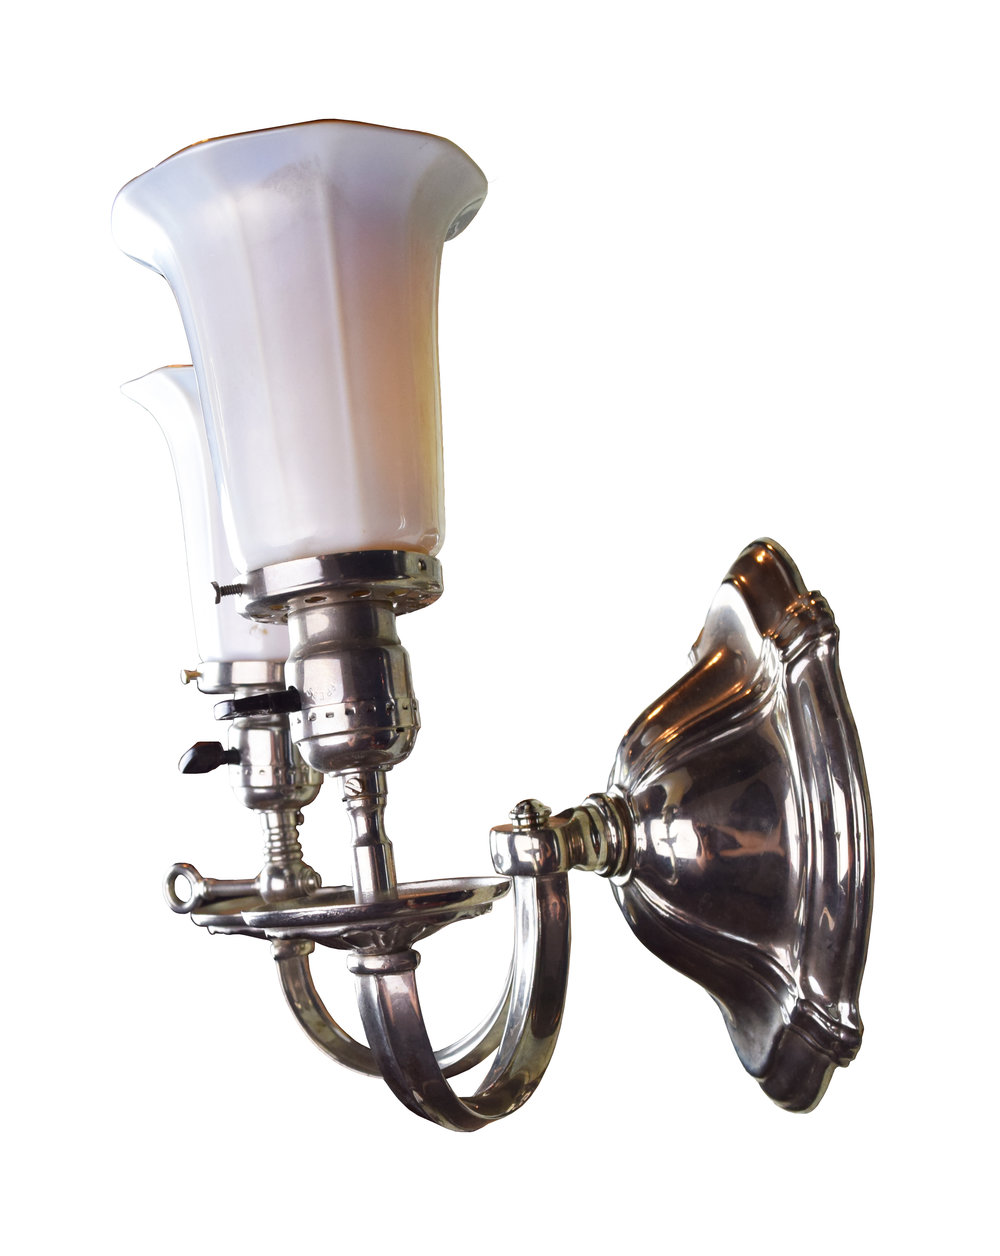 47174-silver-over-bronze-sheffield-2-candle-sconce-side-2.jpg